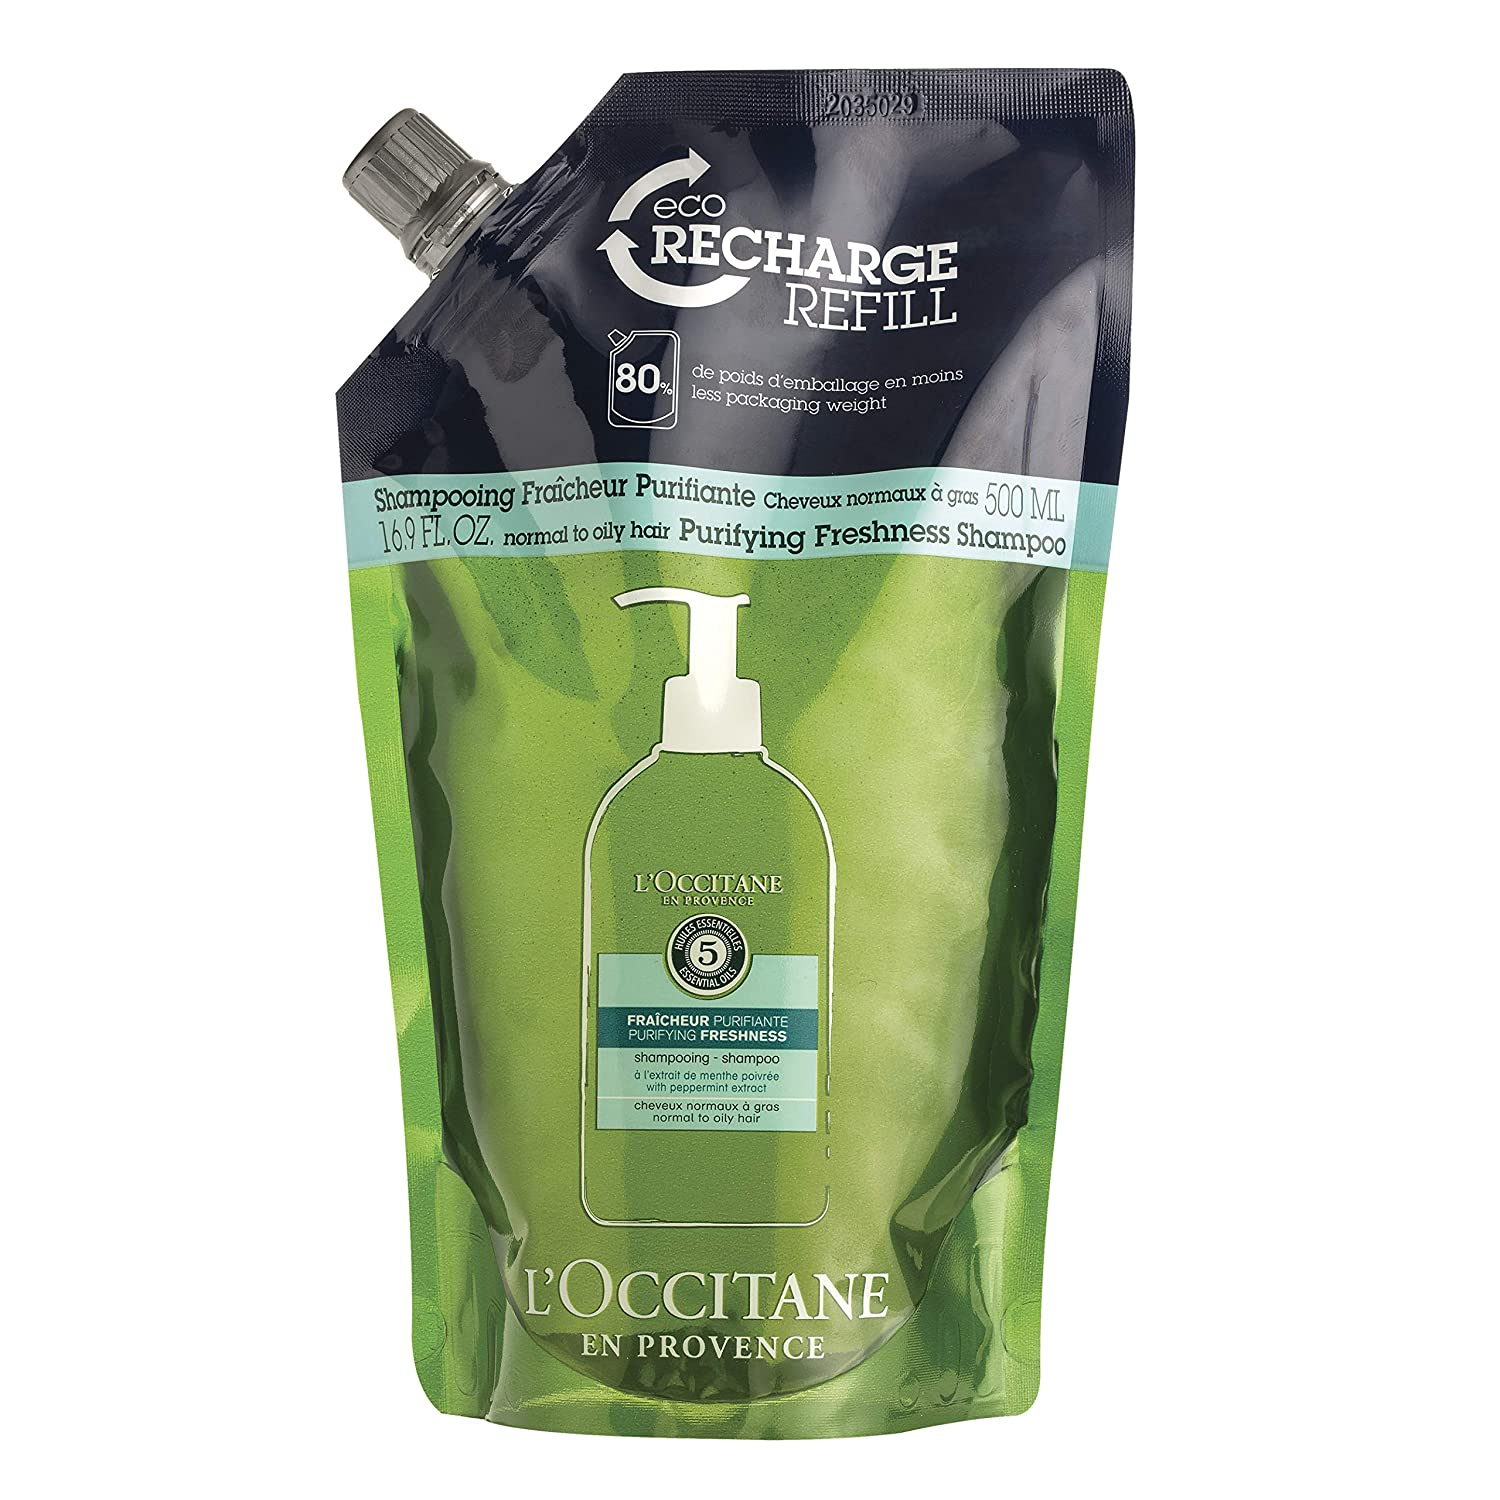 L'Occitane Aromachologie Purifying Freshness Shampoo Refill Enriched with 5 Essential Oils for Normal to Oily Hair, 16.9 Fl Oz